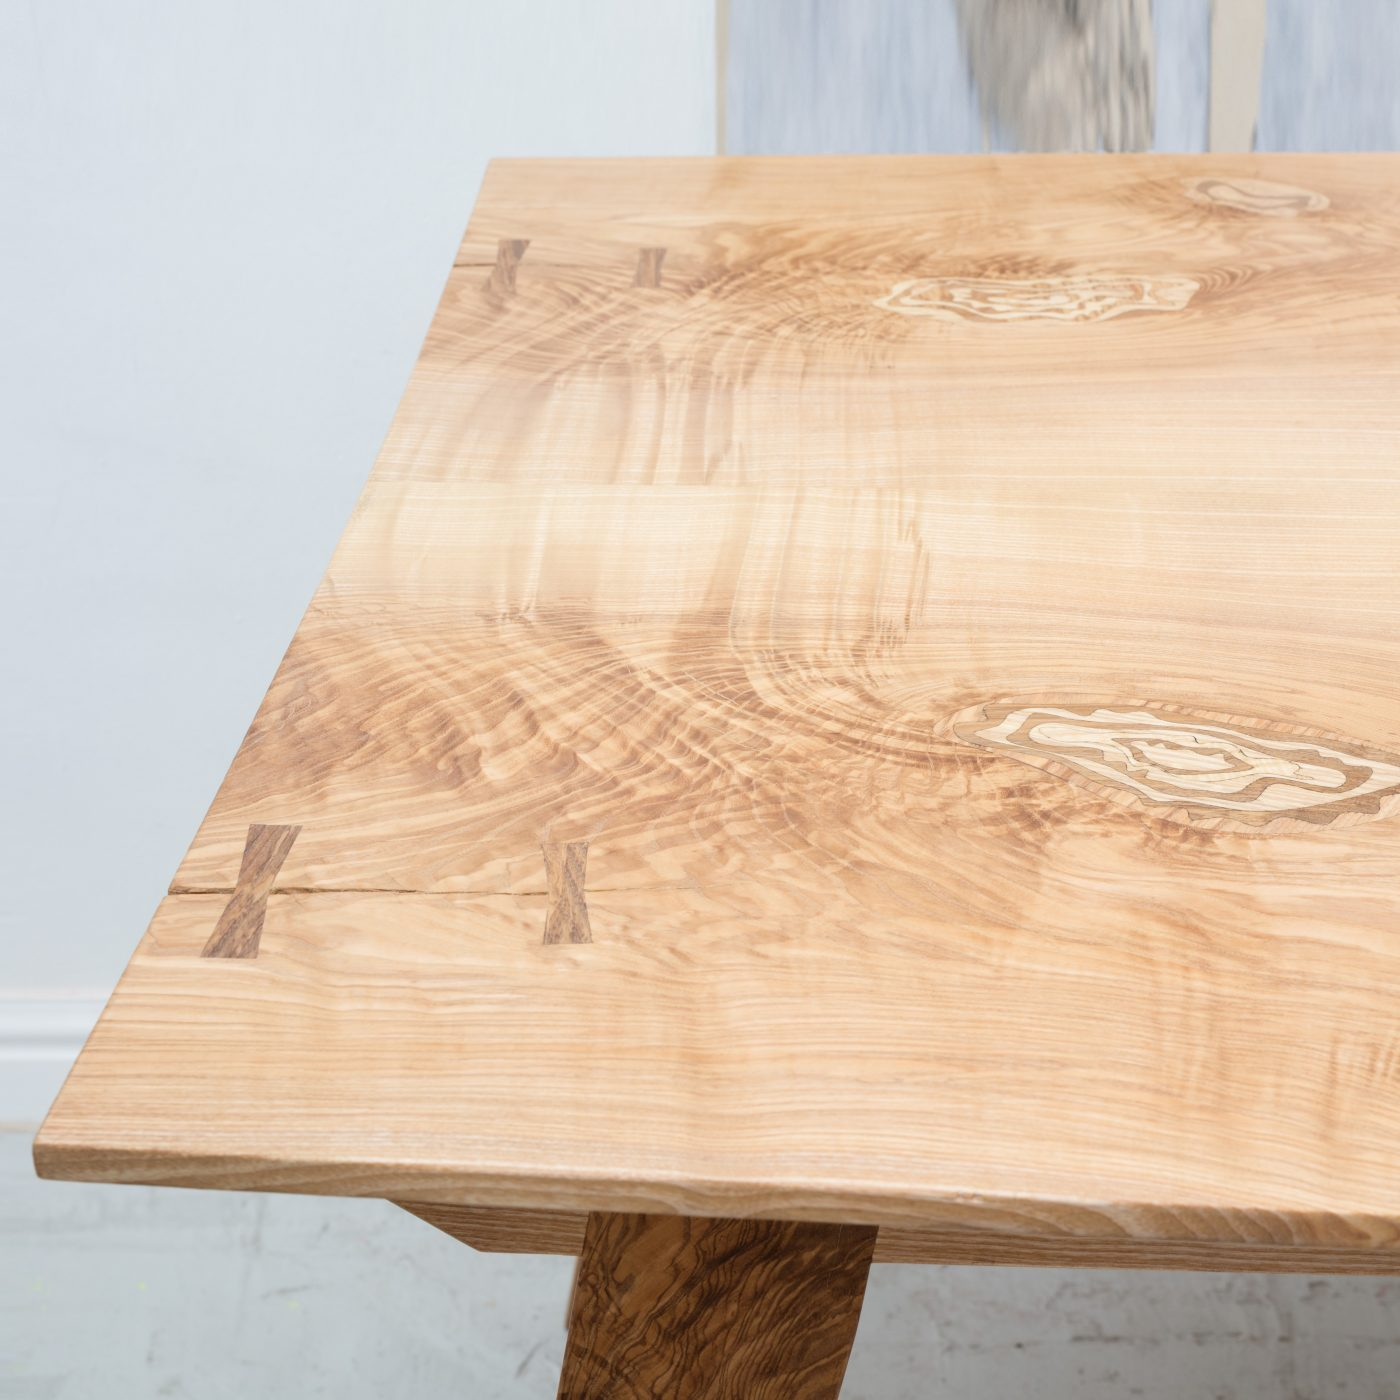 Jan Hendzel Studio olive ash table marquetry-5